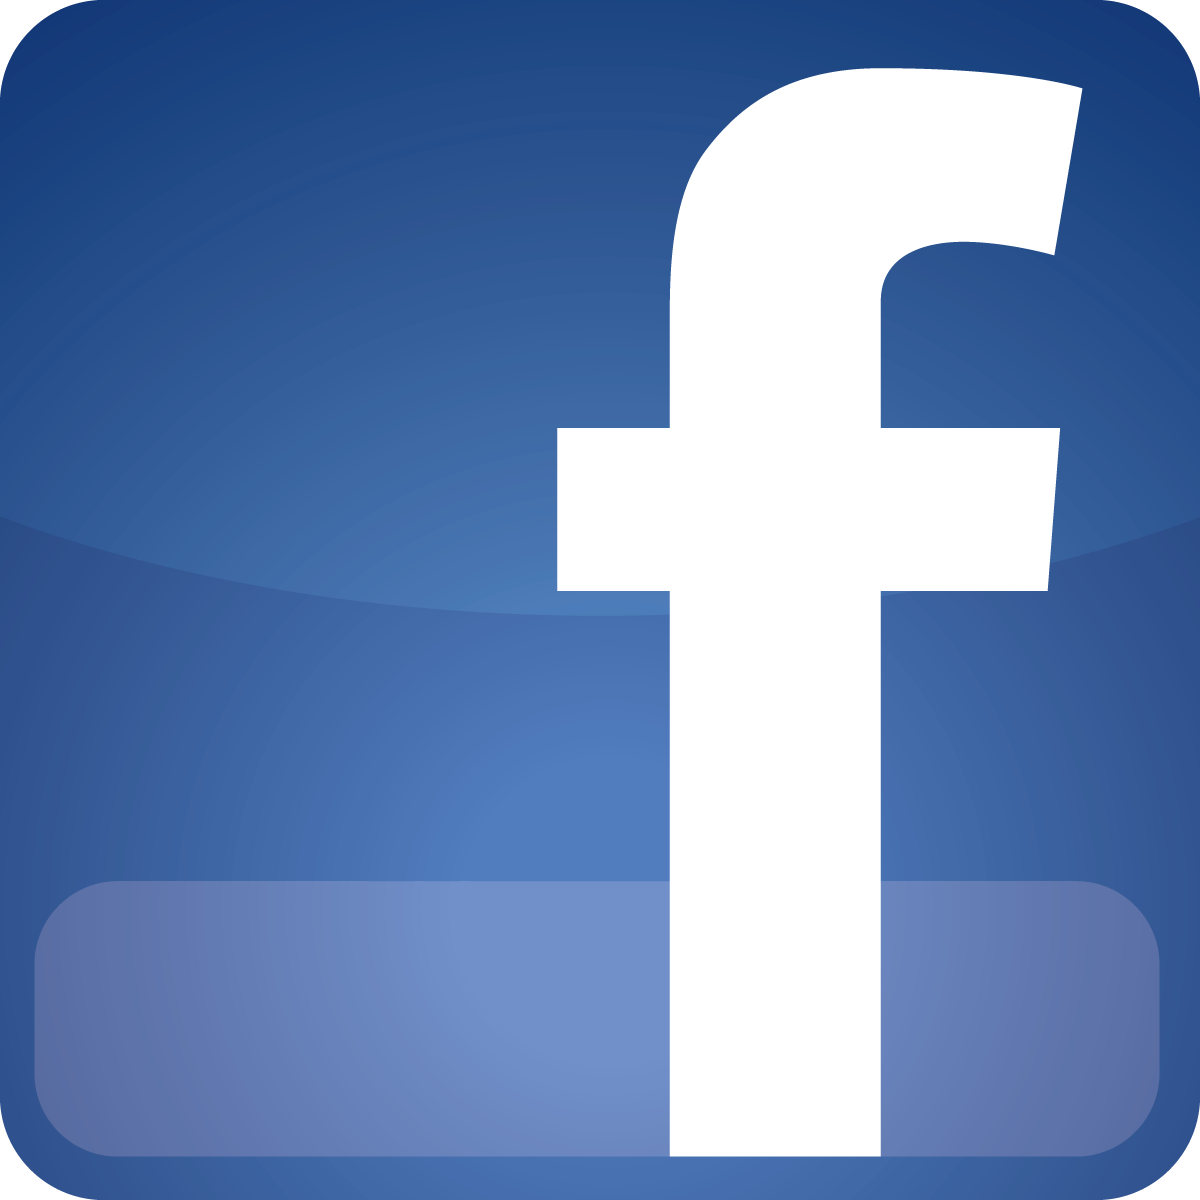 Protect Yourself! Facebook RECOMMENDED privacy settings